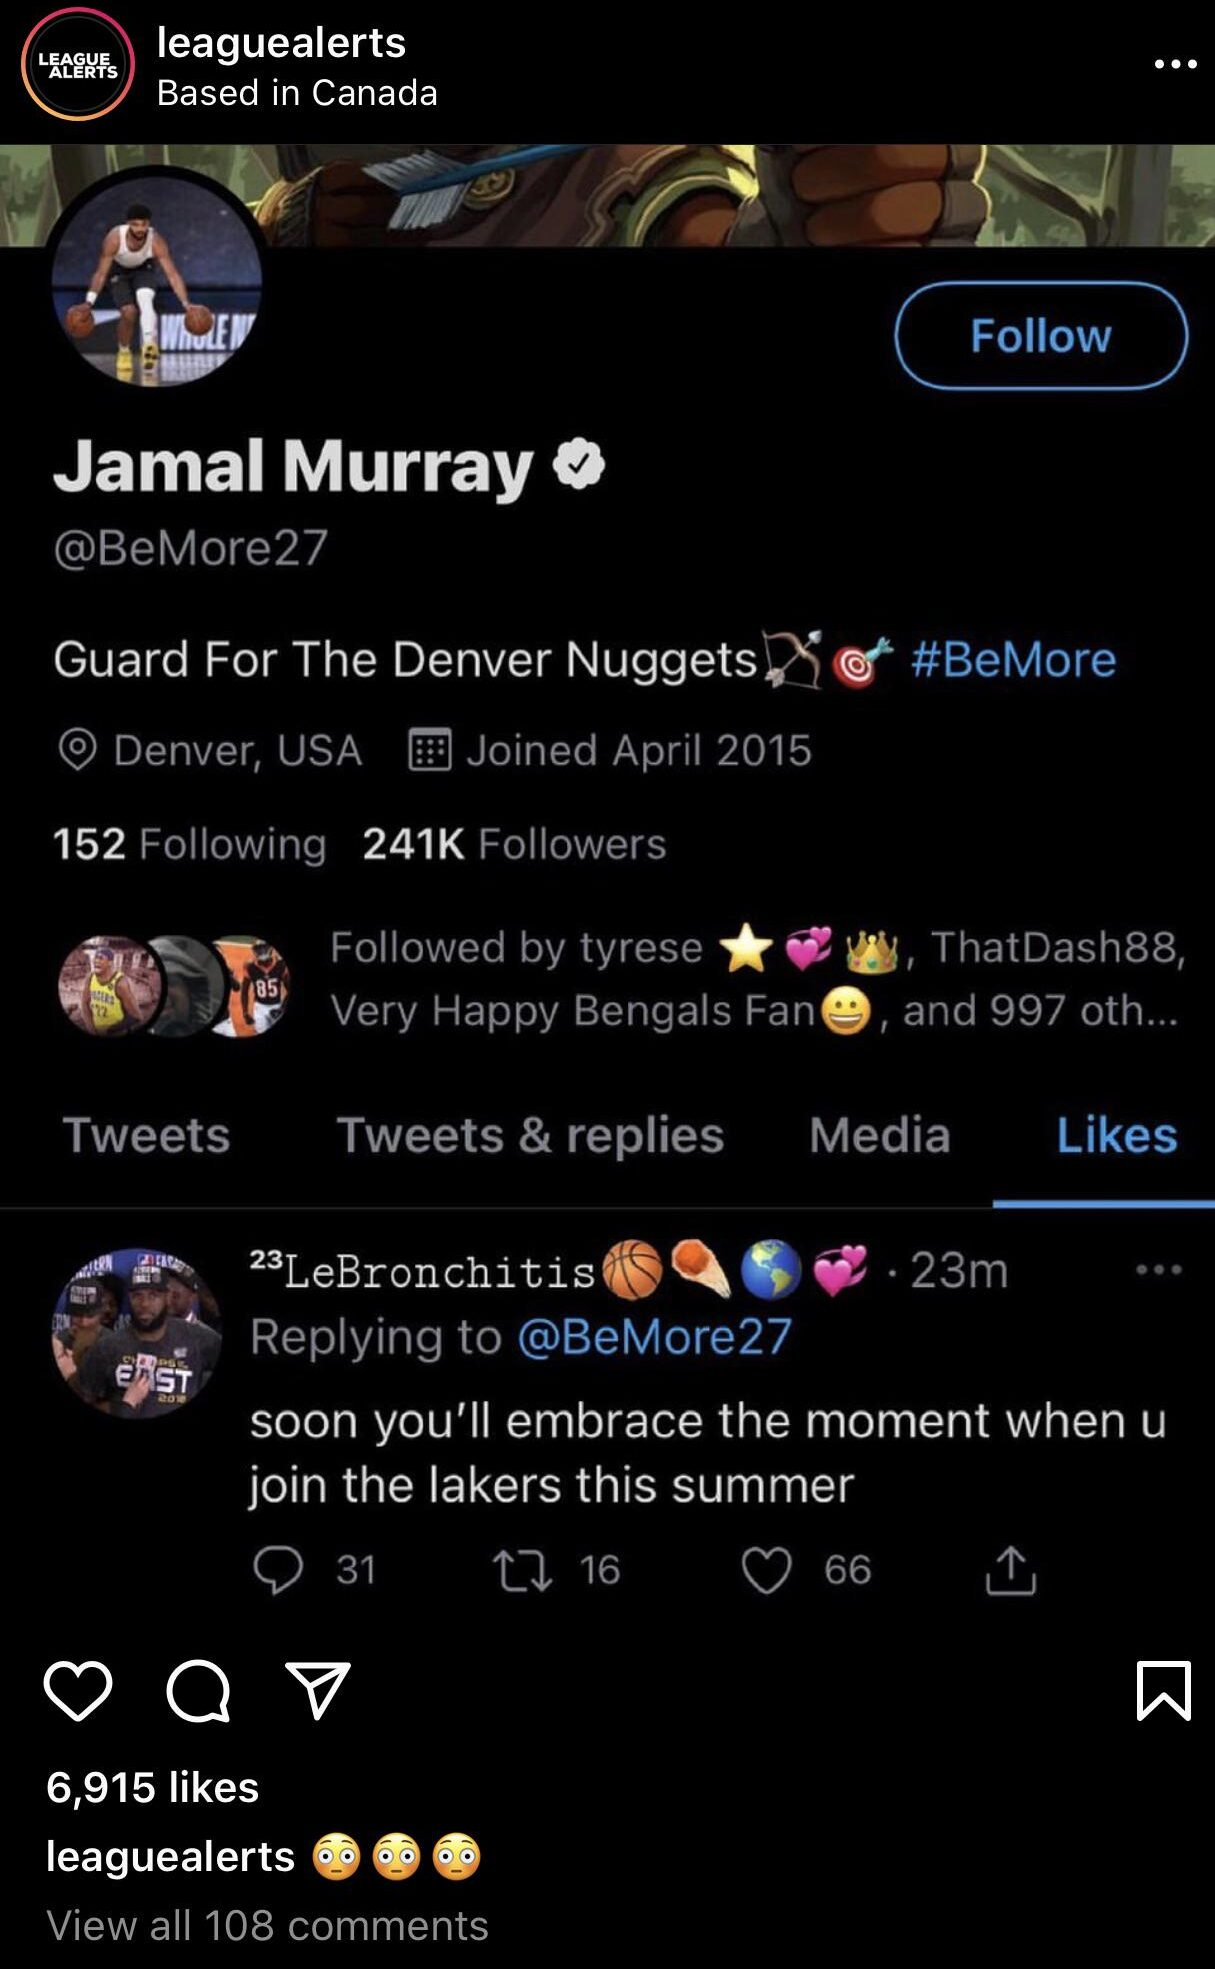 Jamal Murray and Los Angeles Lakers